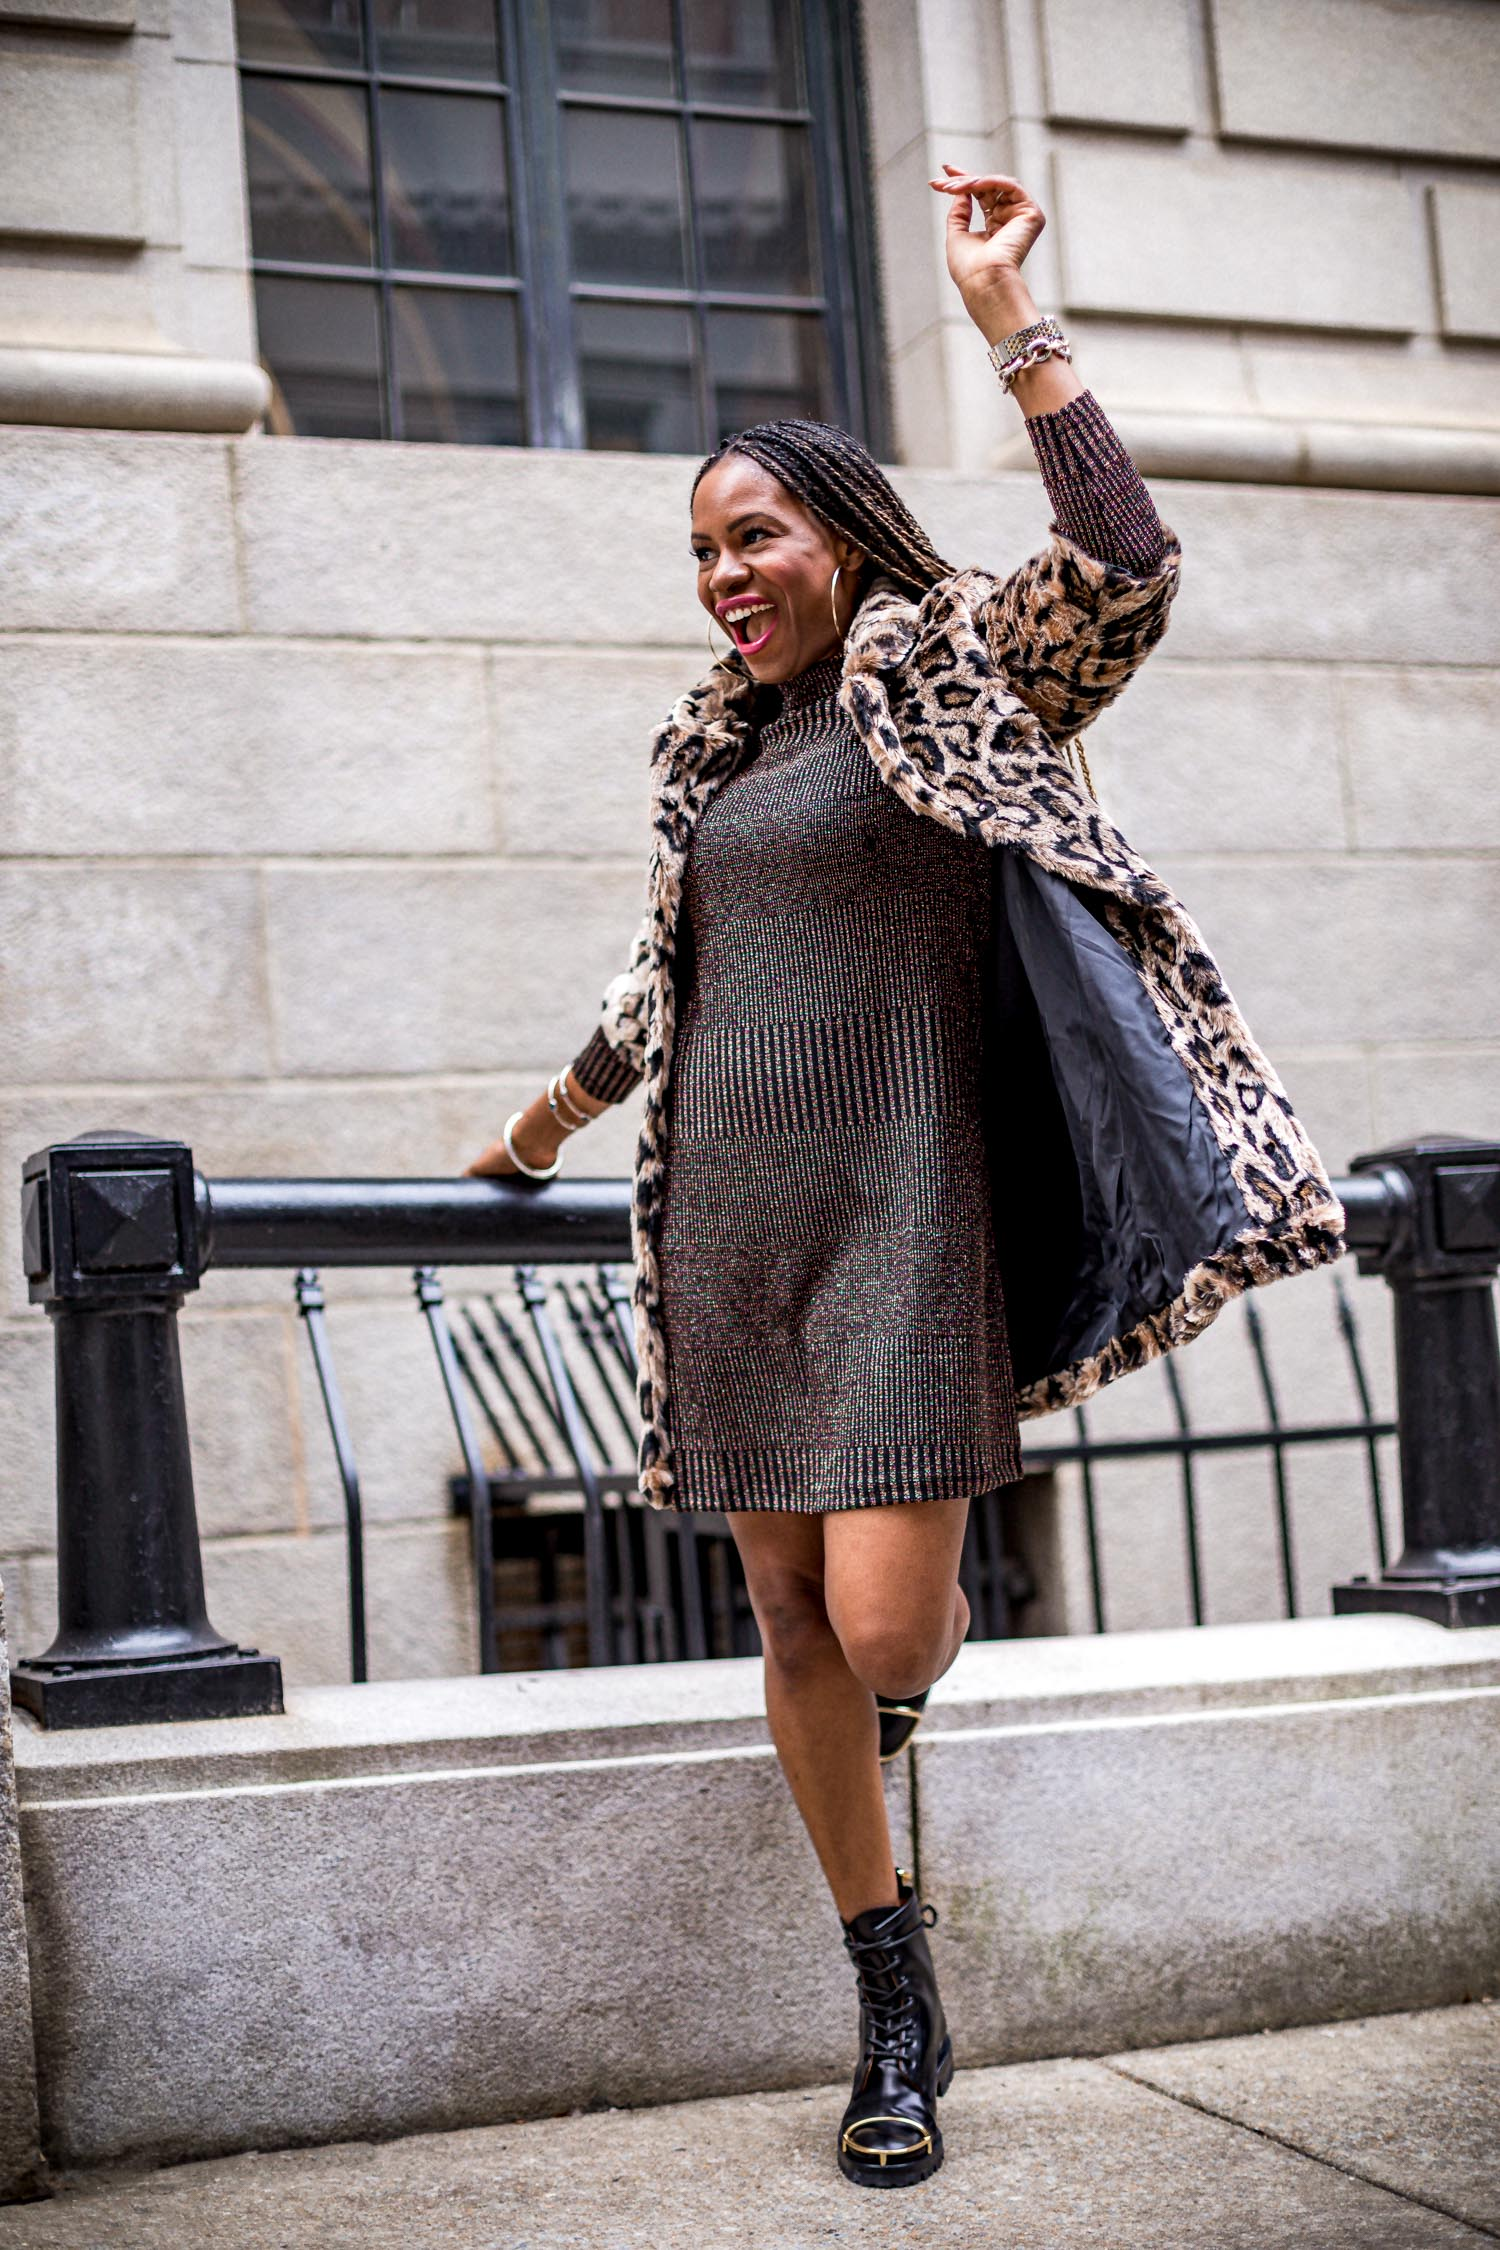 top atlanta fashion blogger wearing walmart metallic dress, faux fur leopard coat, combat boots, alexander wang boots, combat boots, holiday style, how to create a holiday look for under $100, leopard coat, how to style a leopard coat, how to style combat boots, what coat to wear this holiday season